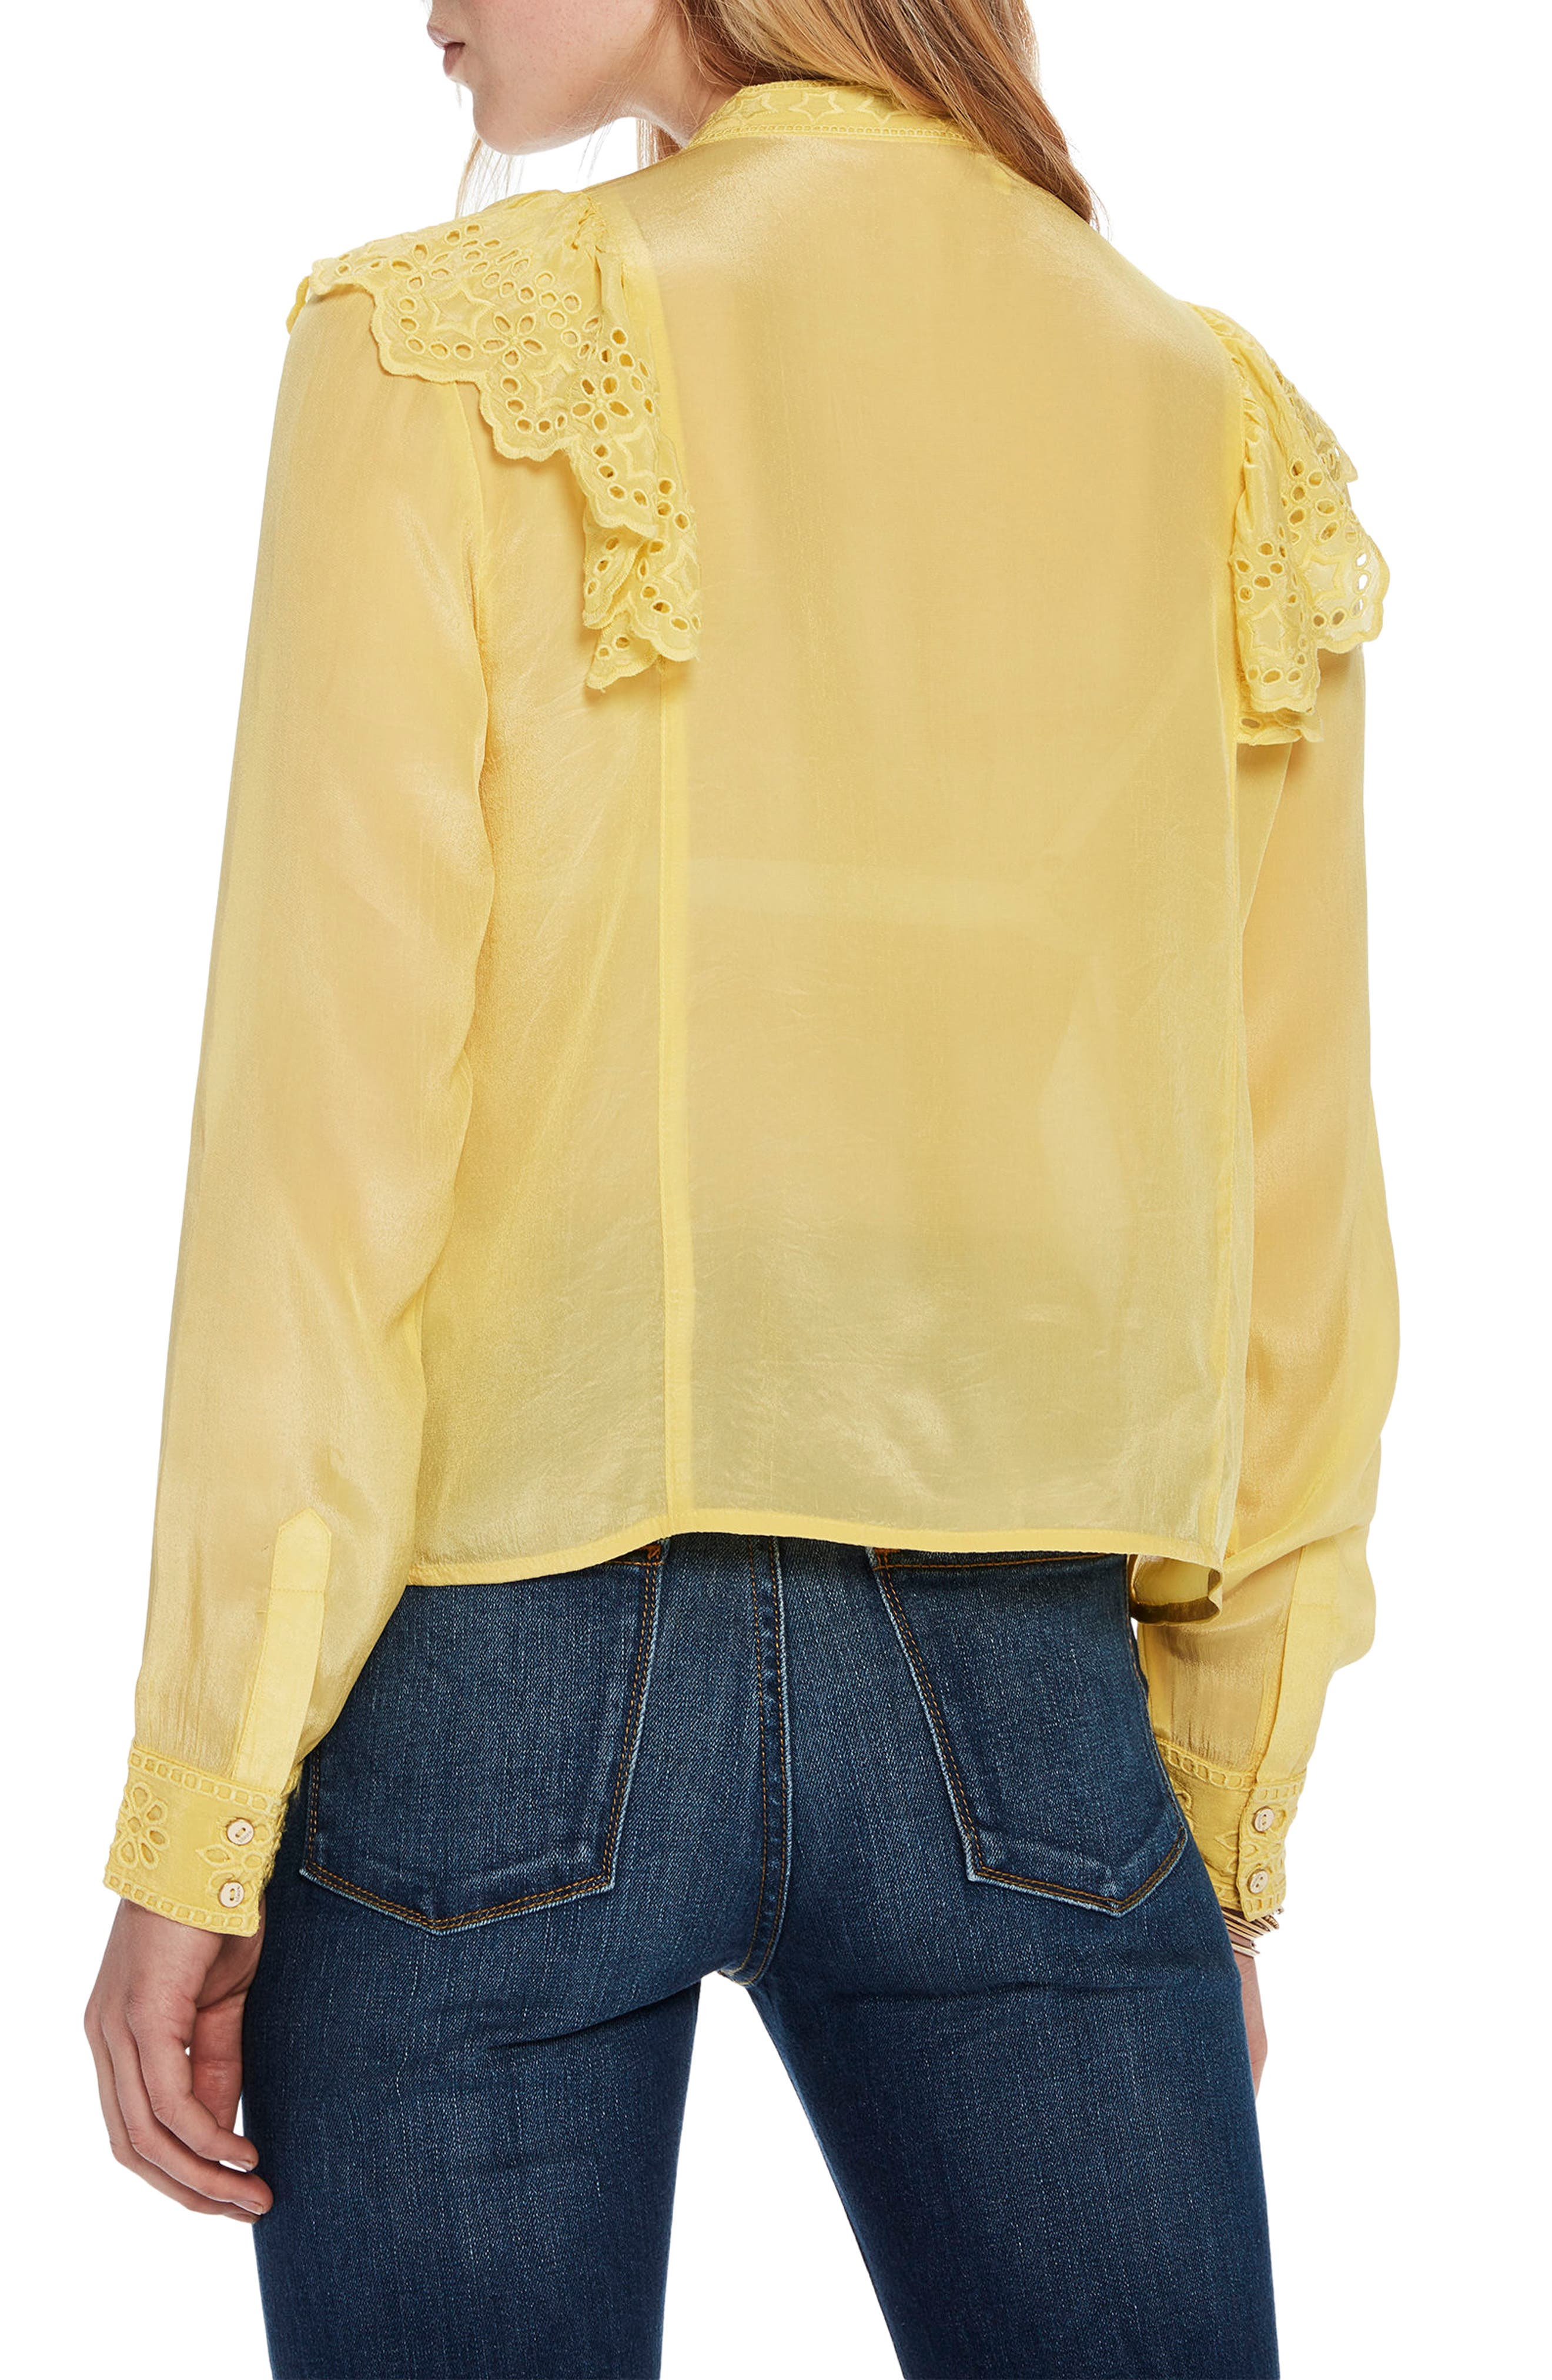 Ruffle Embroidered Eyelet Top,                             Alternate thumbnail 2, color,                             730